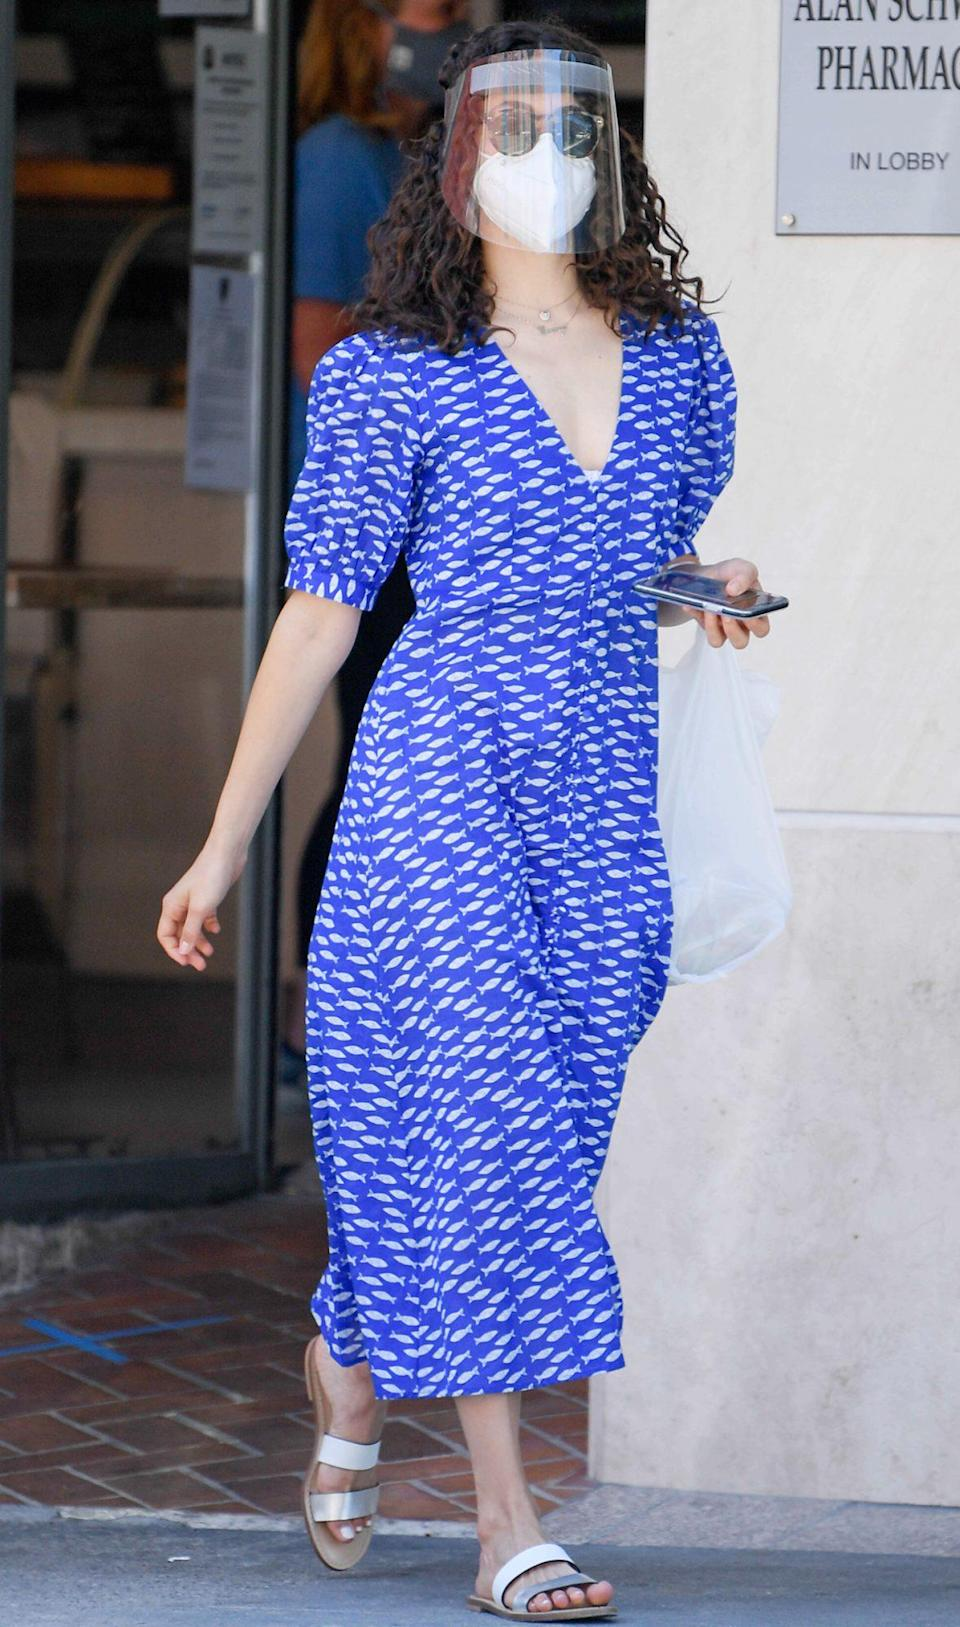 <p>Emmy Rossum picks up lunch from Nate 'n Al's Deli in Beverly Hills on Wednesday dressed in a summery blue sundress and strappy sandals.</p>